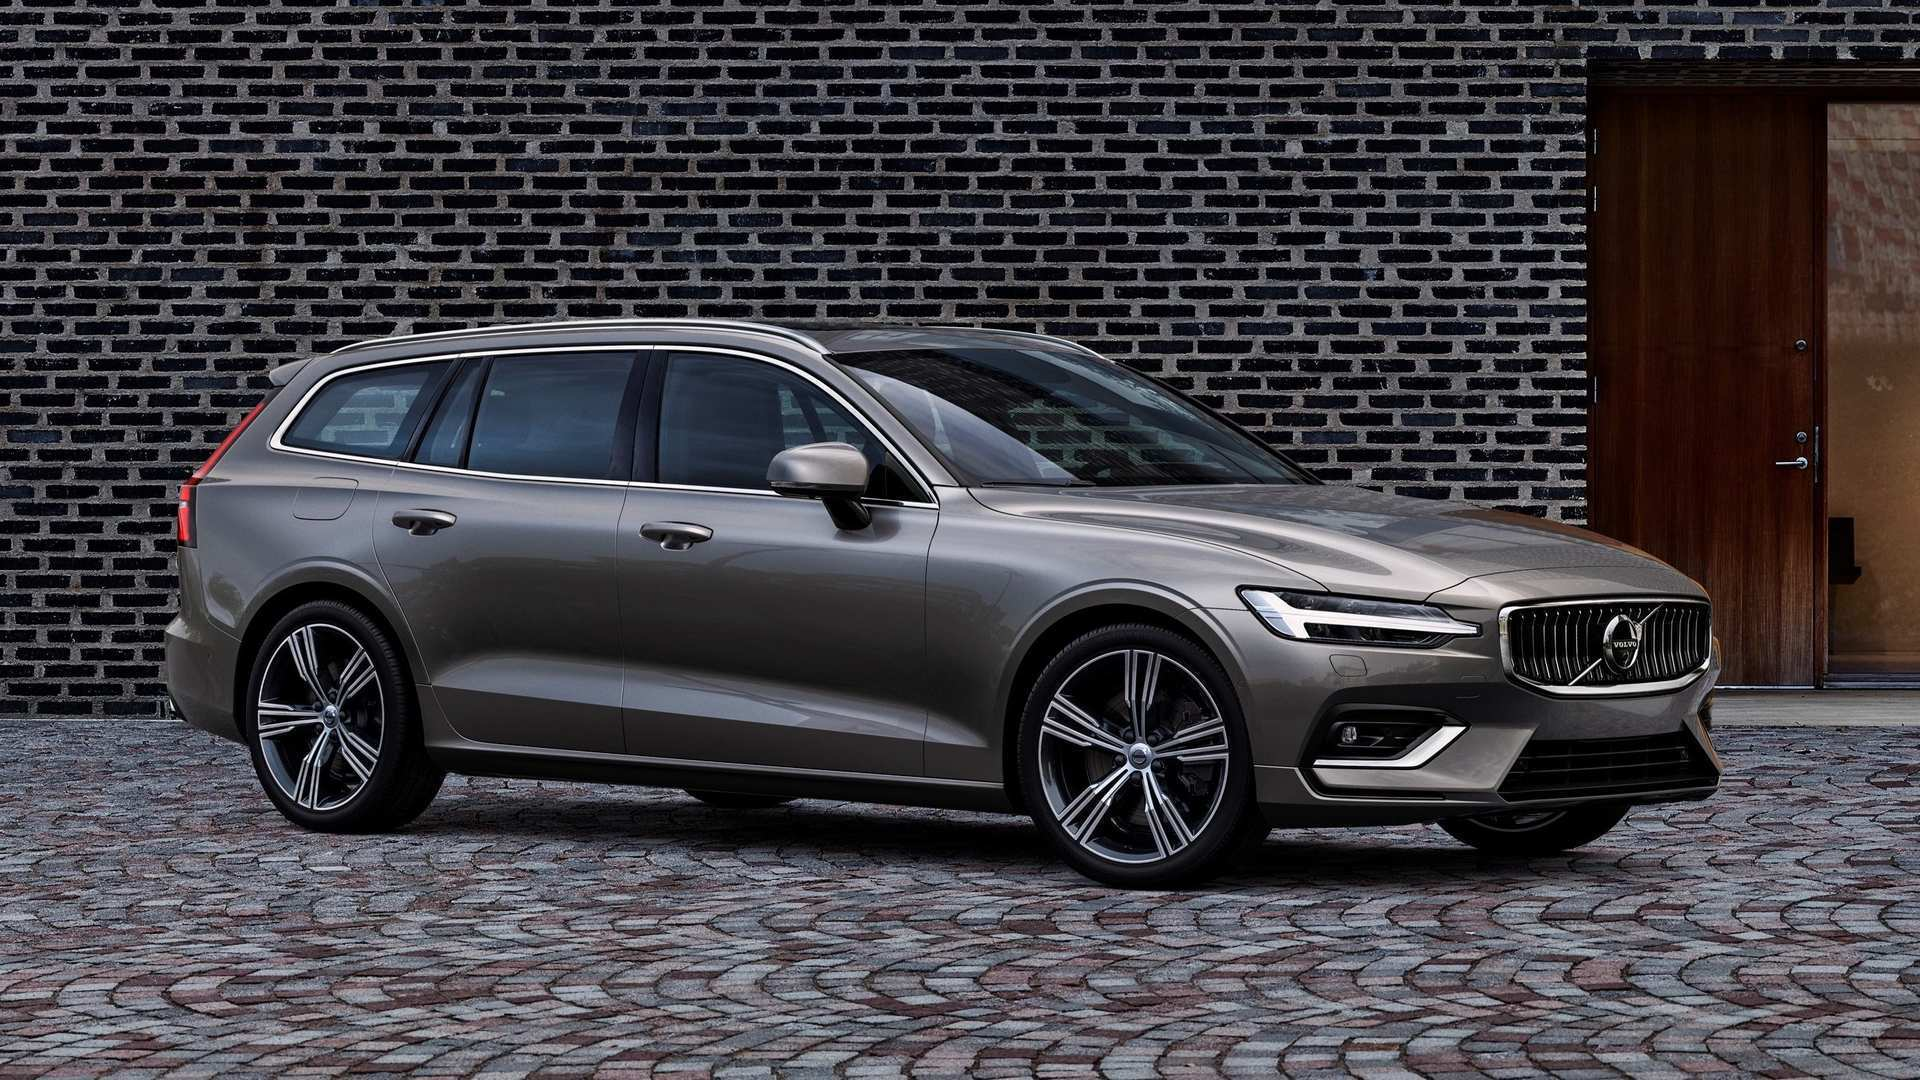 82 Best Review Volvo 2019 V60 Review Interior Exterior And Review Concept with Volvo 2019 V60 Review Interior Exterior And Review